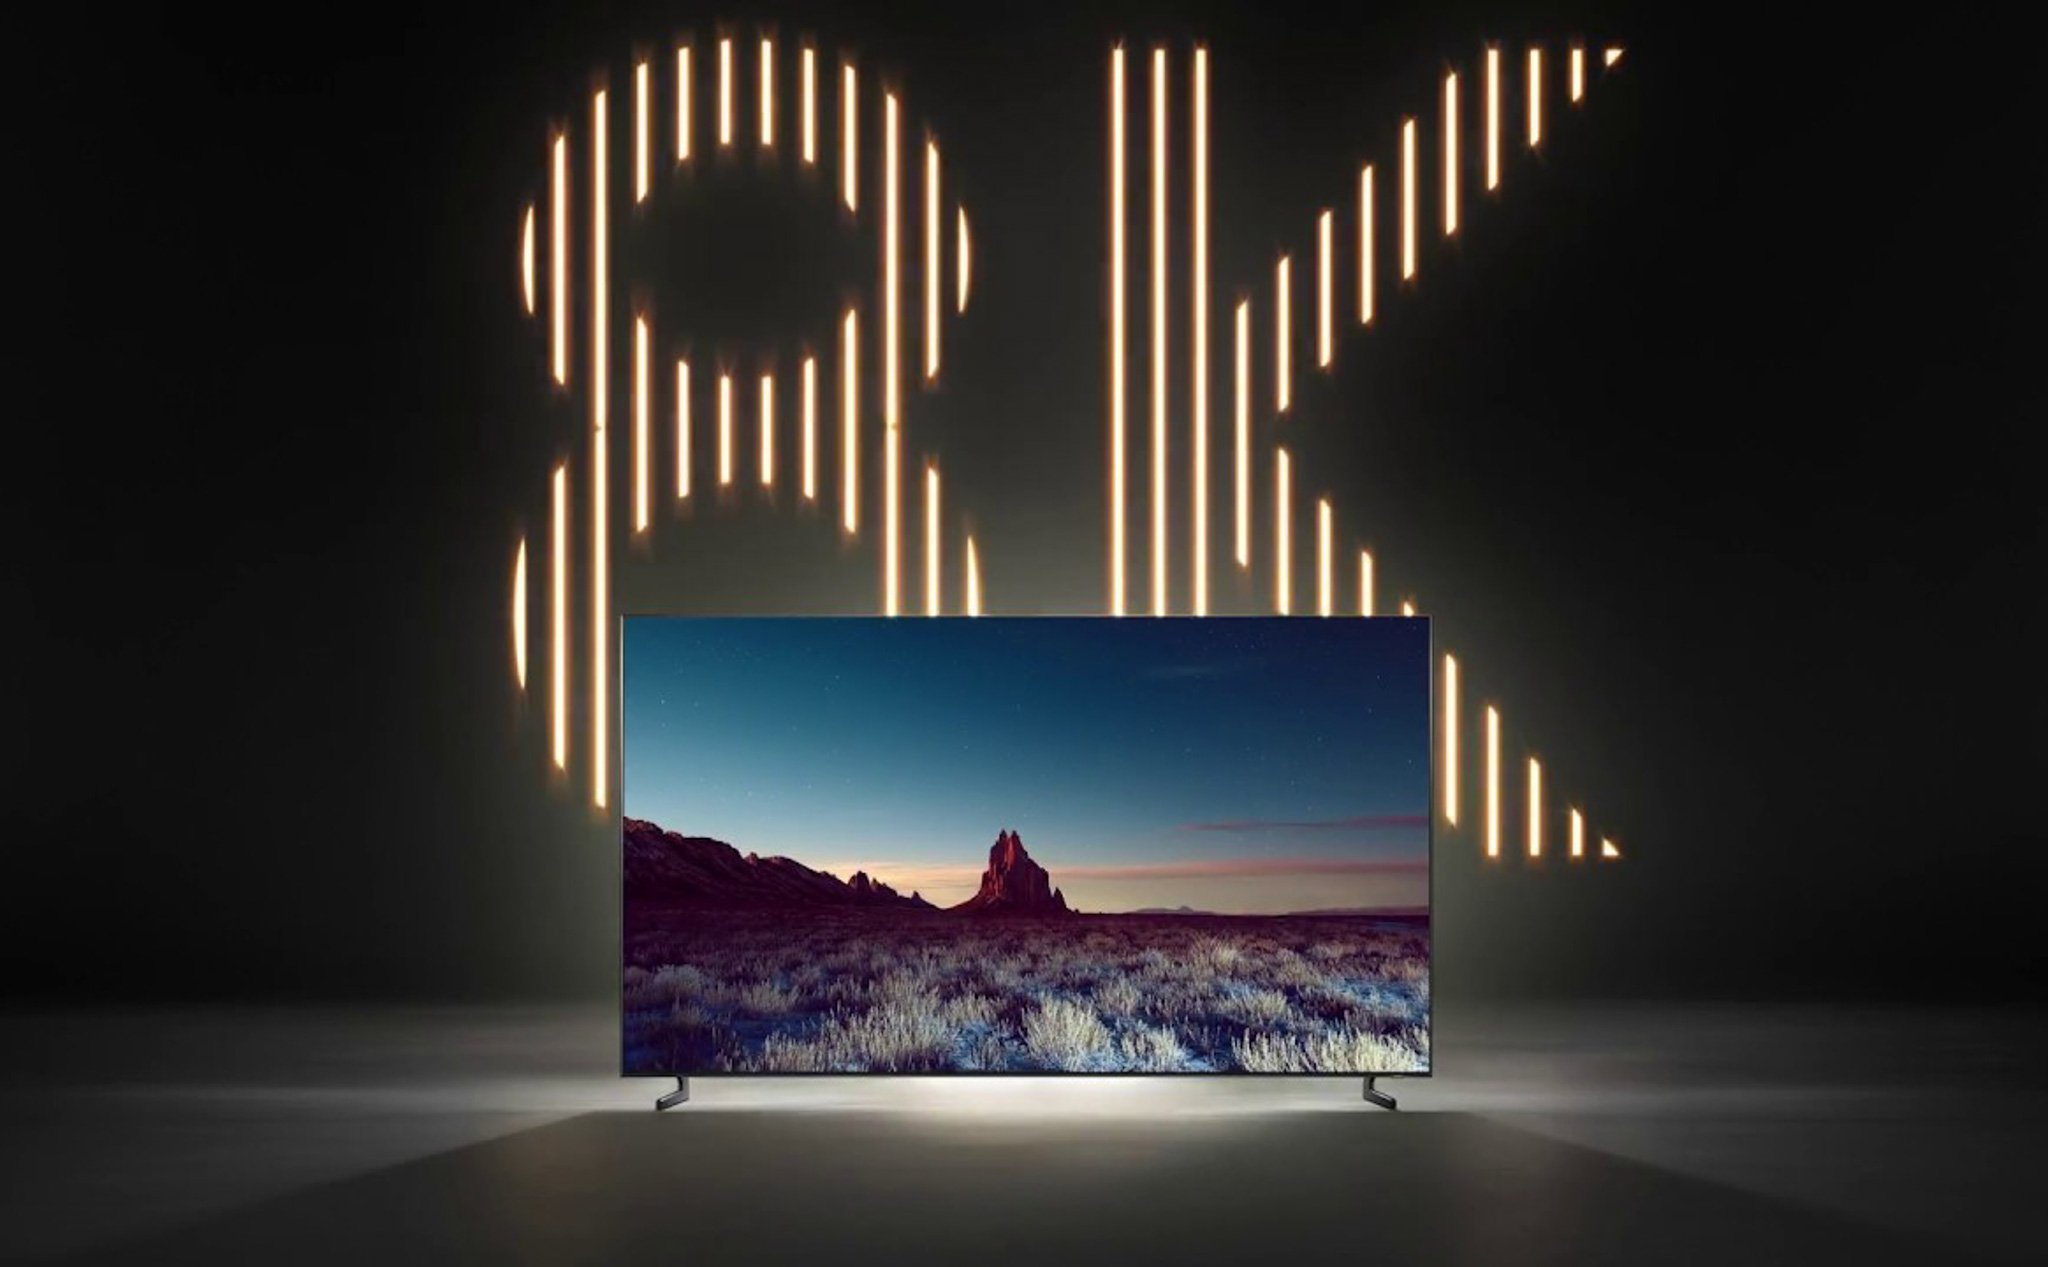 Samsung sold more than 8000 units of the 8K QLED TV in Korea